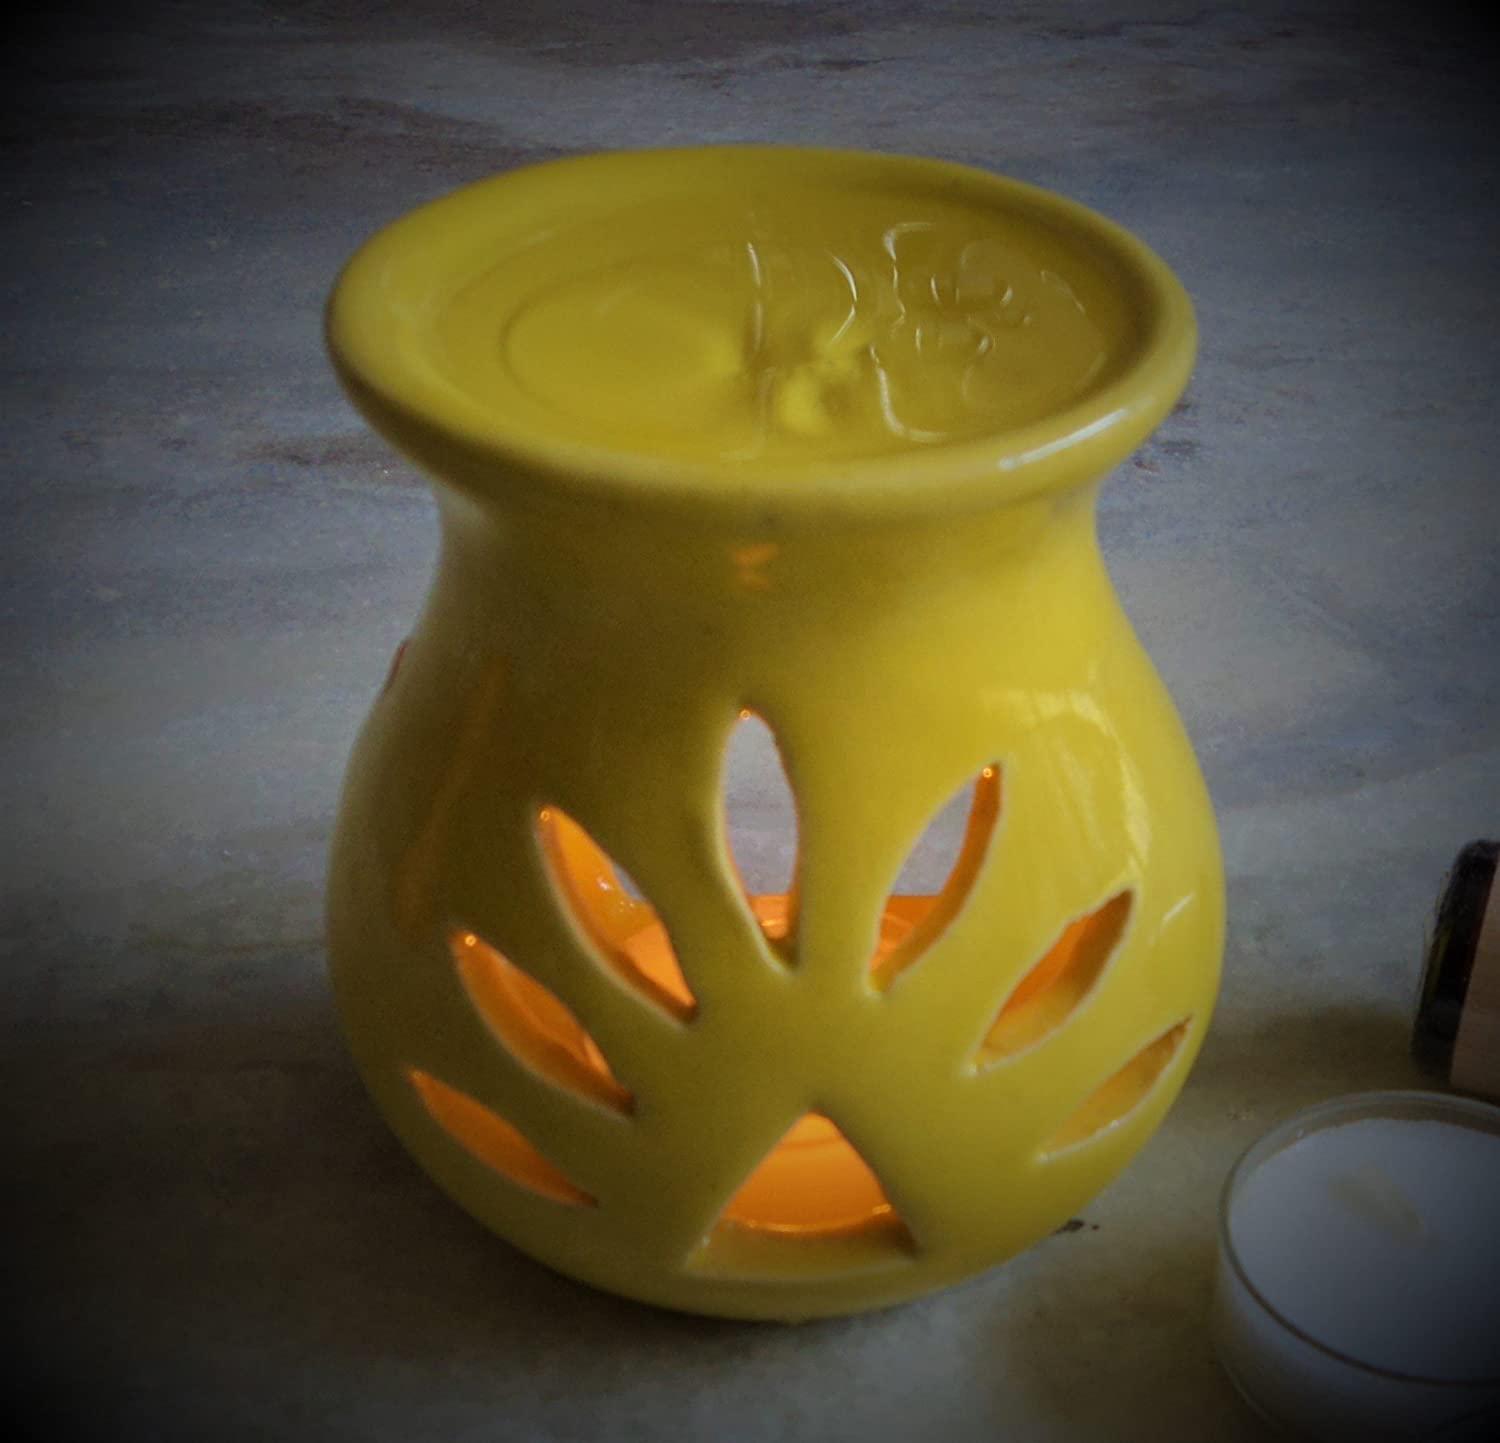 Pure Source India Regular ceramic aroma burner good quality coming with 1 pcs free candles . (Yellow)